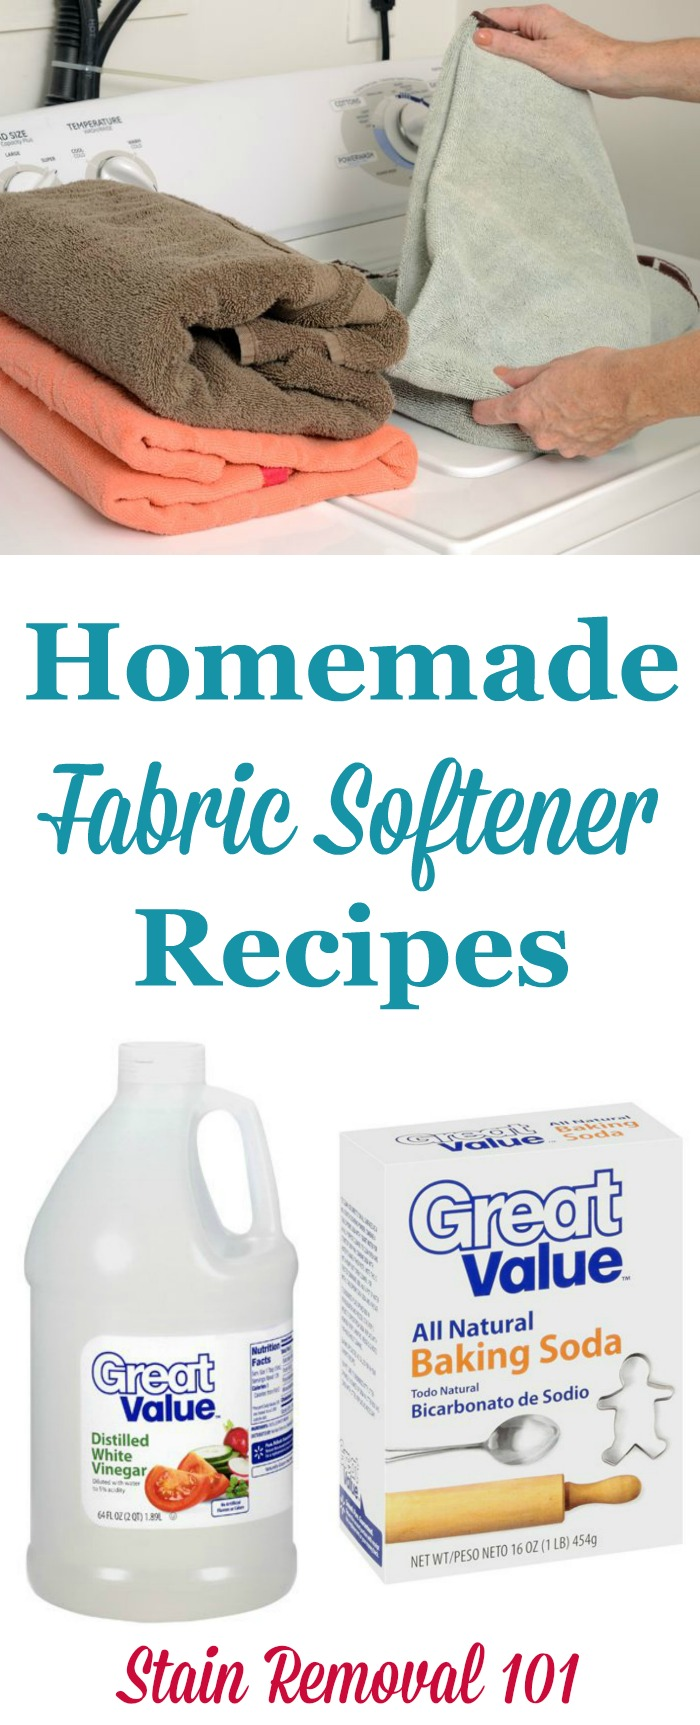 how to make homemade fabric softener